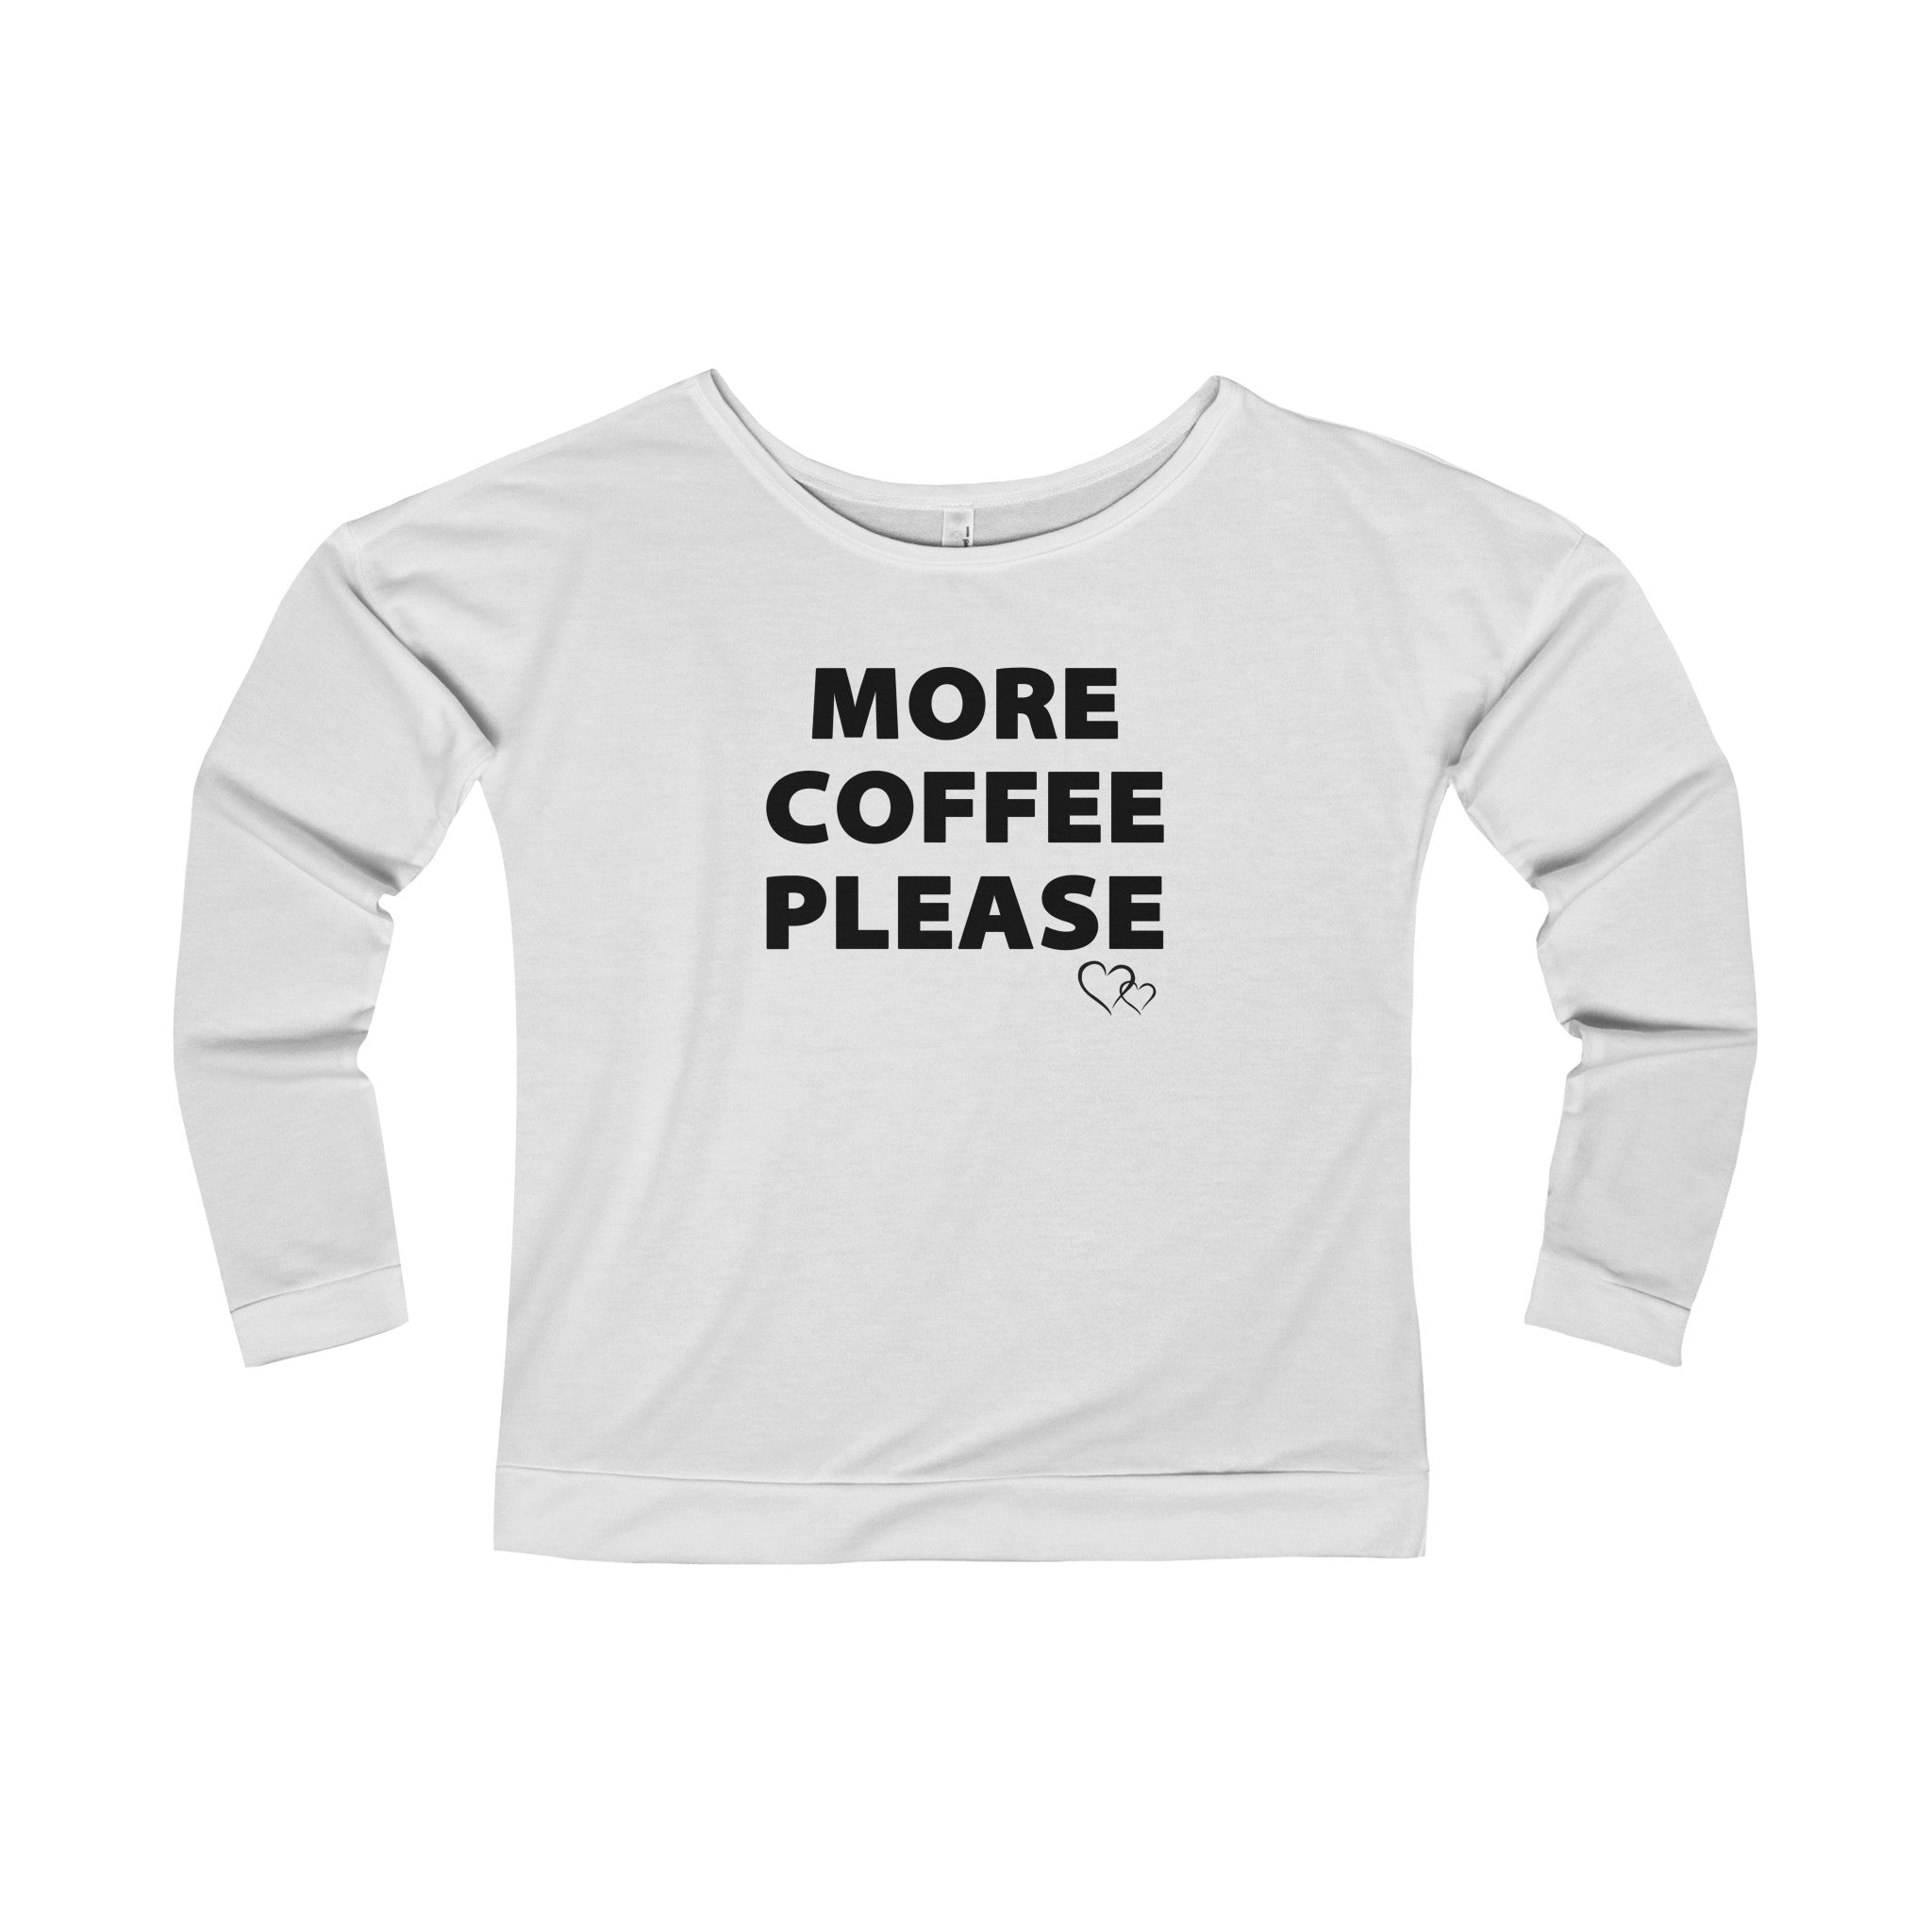 MORE COFFEE PLEASE - Long Sleeve Scoop Terry T